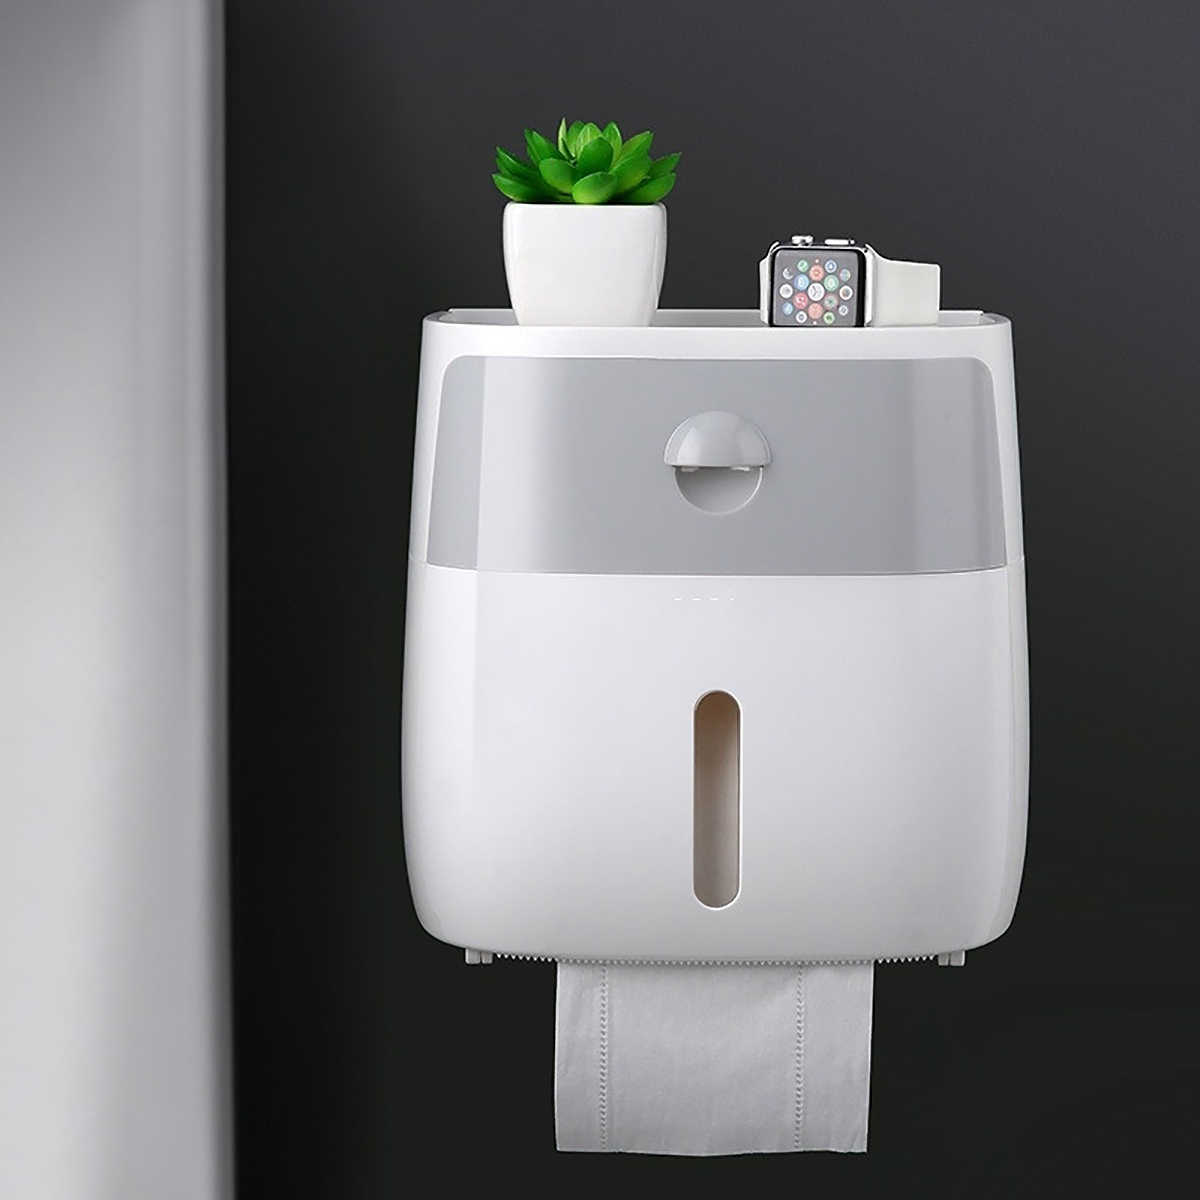 Tissue Box Bathroom Paper Towel Mobile Phone Holder For Kitchen Hand Paper Dispenser Bathroom Accessory Wall Mounted